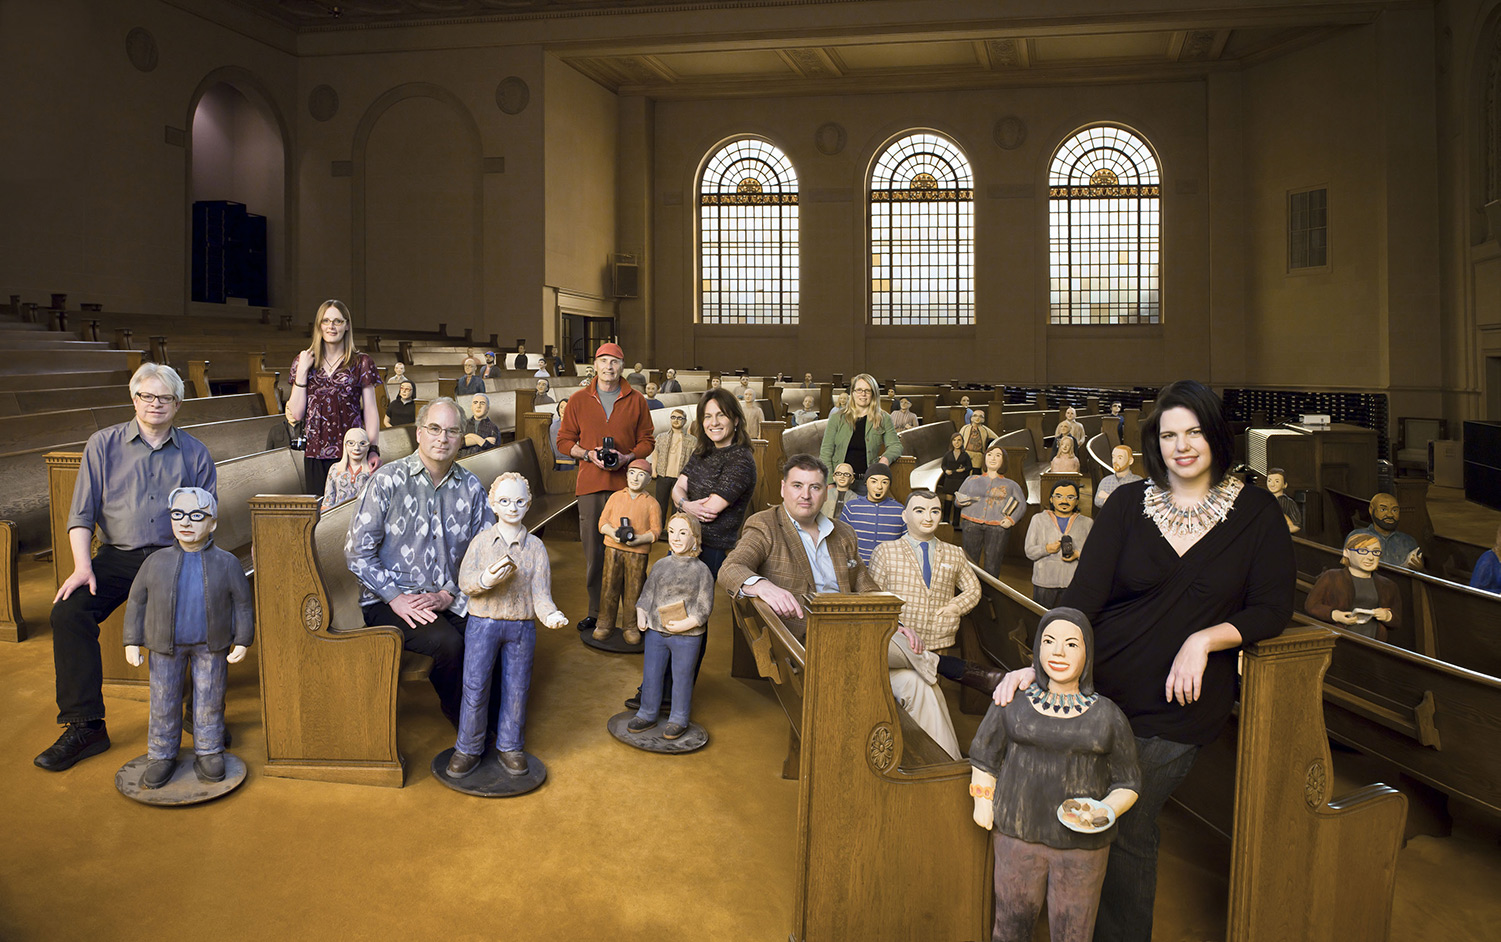 Some  Ceramic Archivists  posed with their human counterparts. Photo: Michael Grecco Productions, Inc. 2012. Featured in   The Human Face of Big Data   by Smolin and Erwitt (pages 24-25 ).